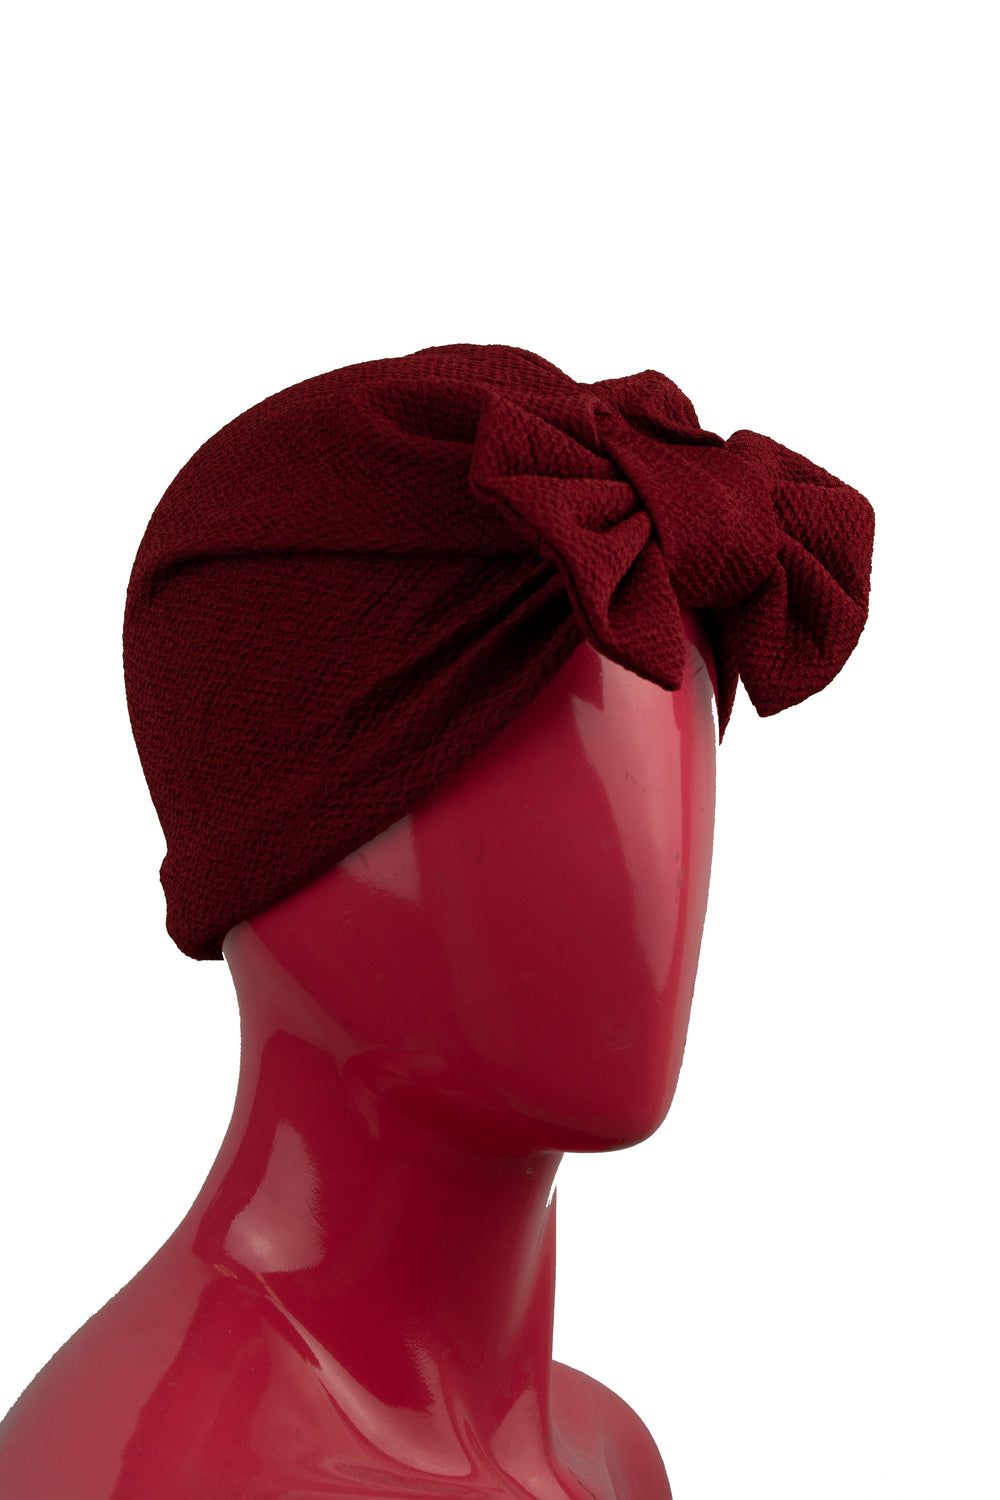 maroon slip on turban with a large bow on the front